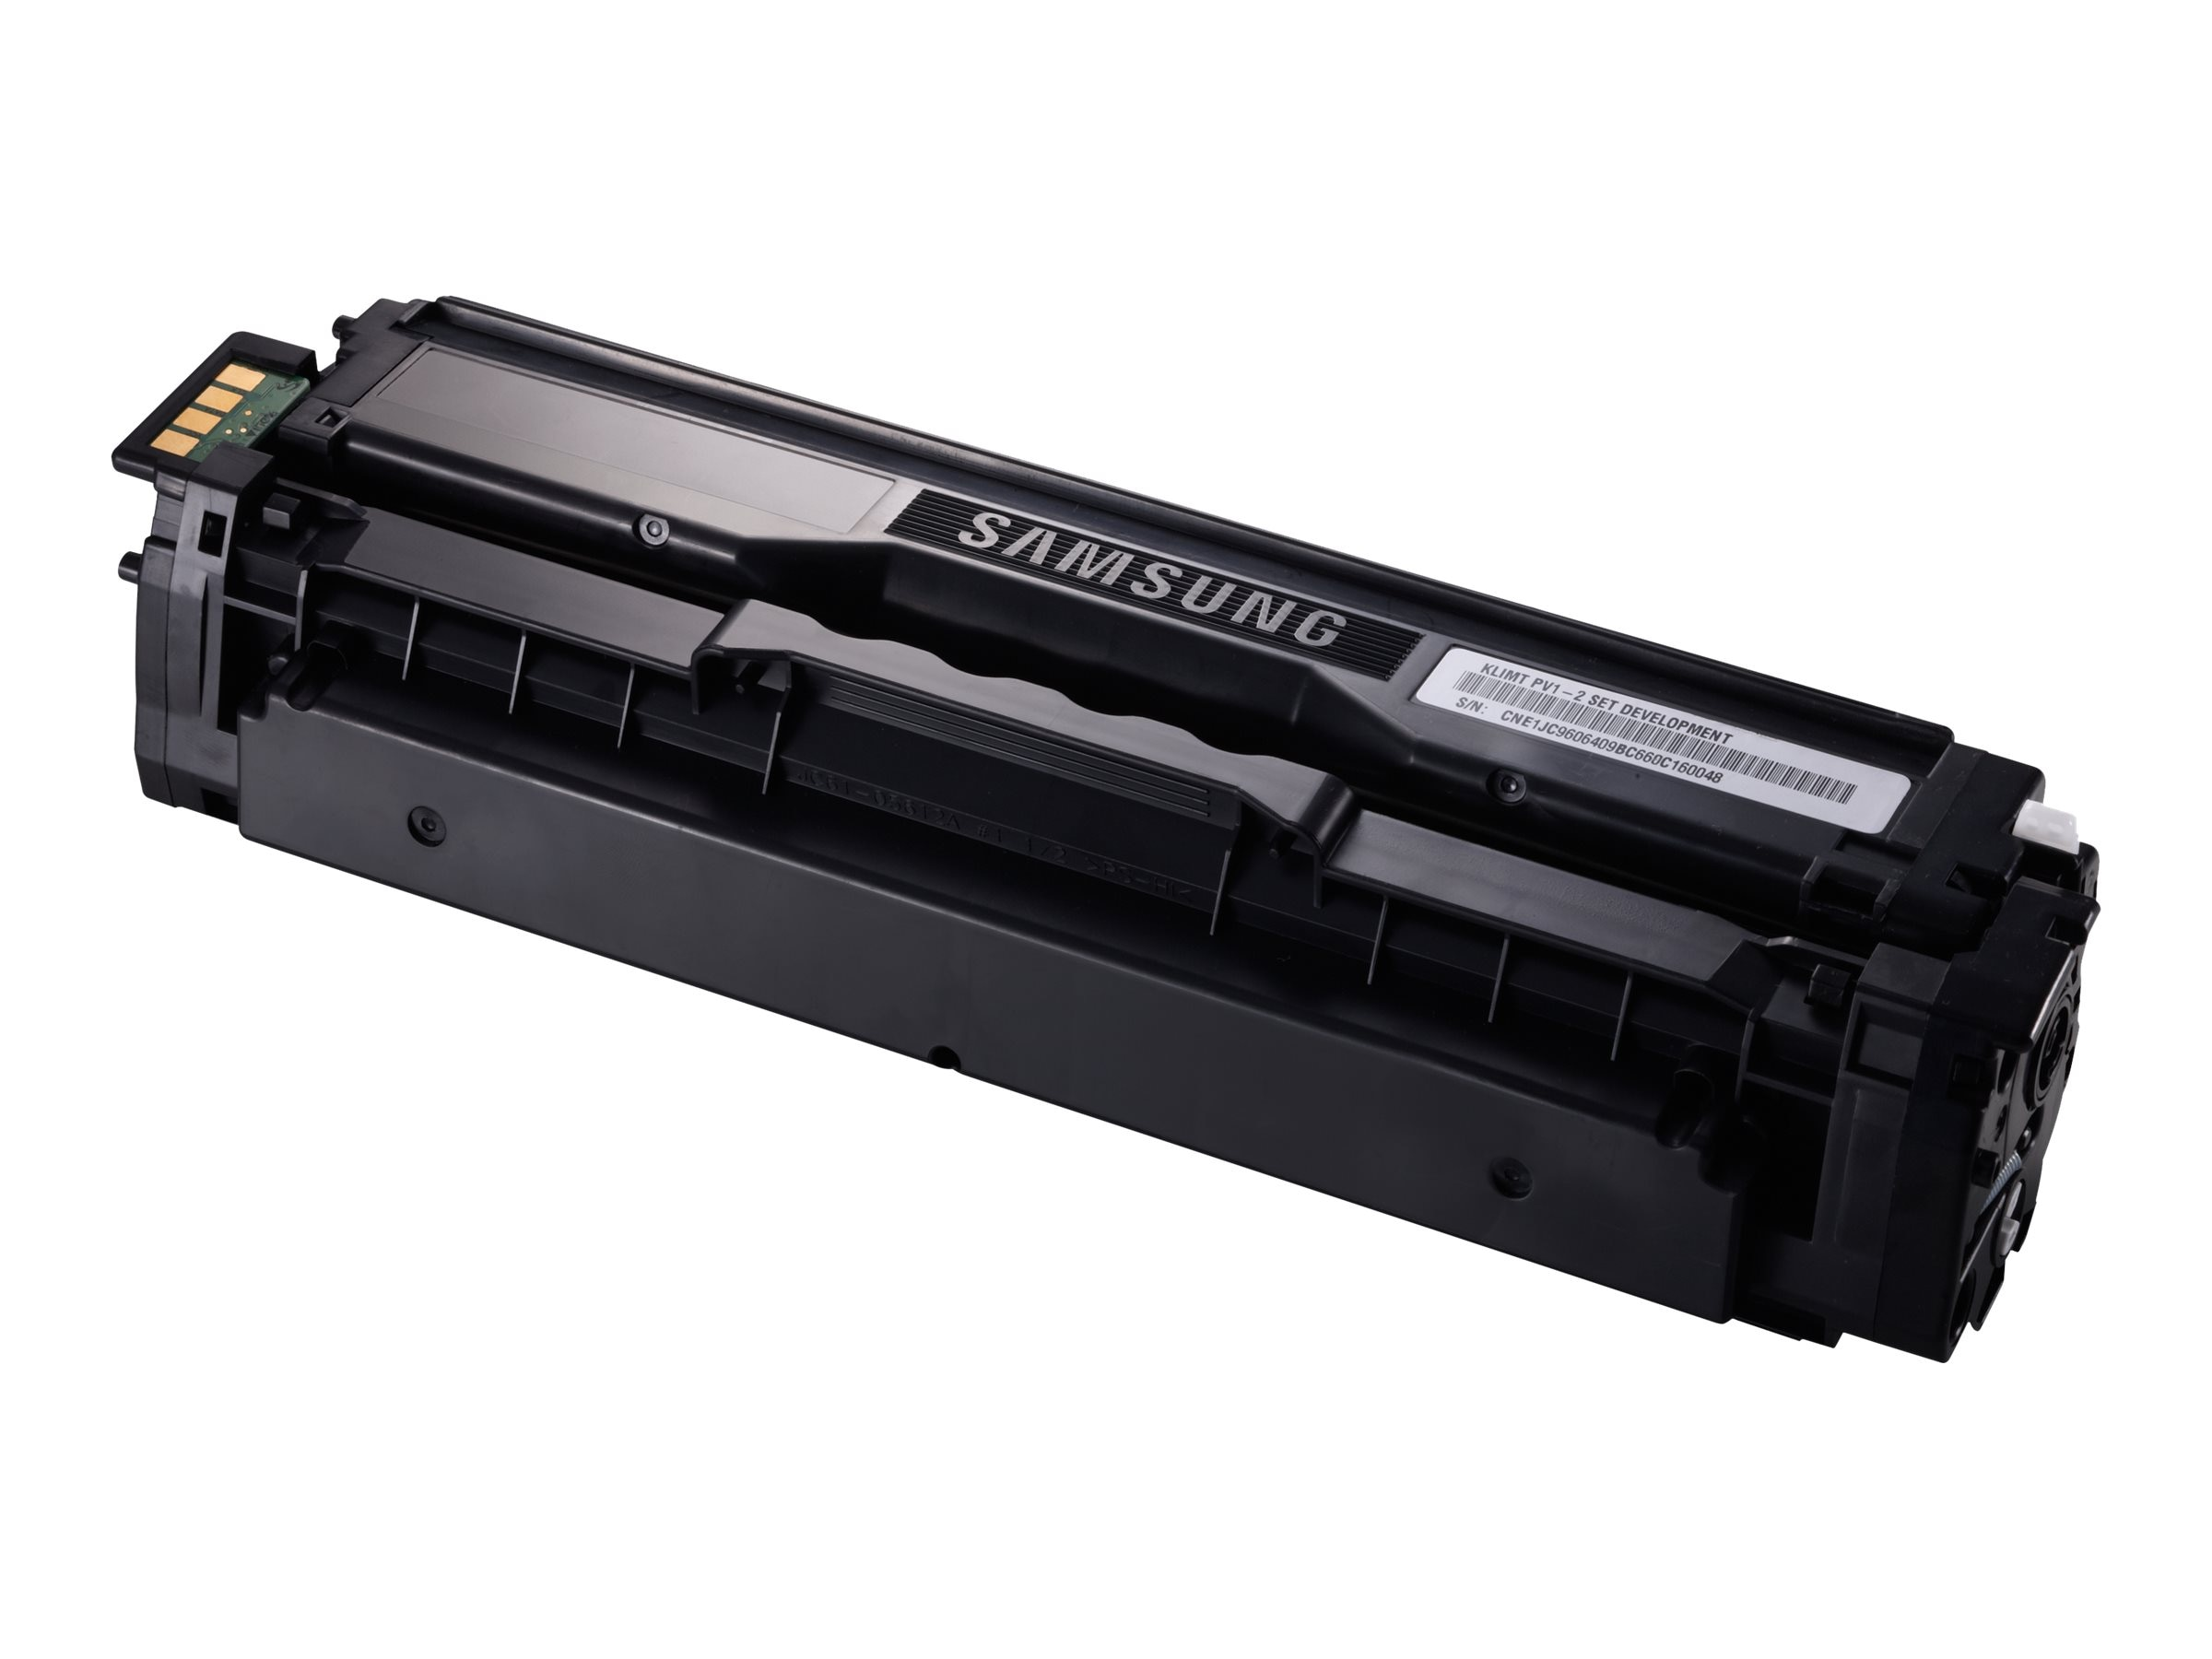 Samsung Black Toner Cartridge for CLP-415NW Color Laser Printer & CLX-4195FW Color Multifunction Printer, CLT-K504S